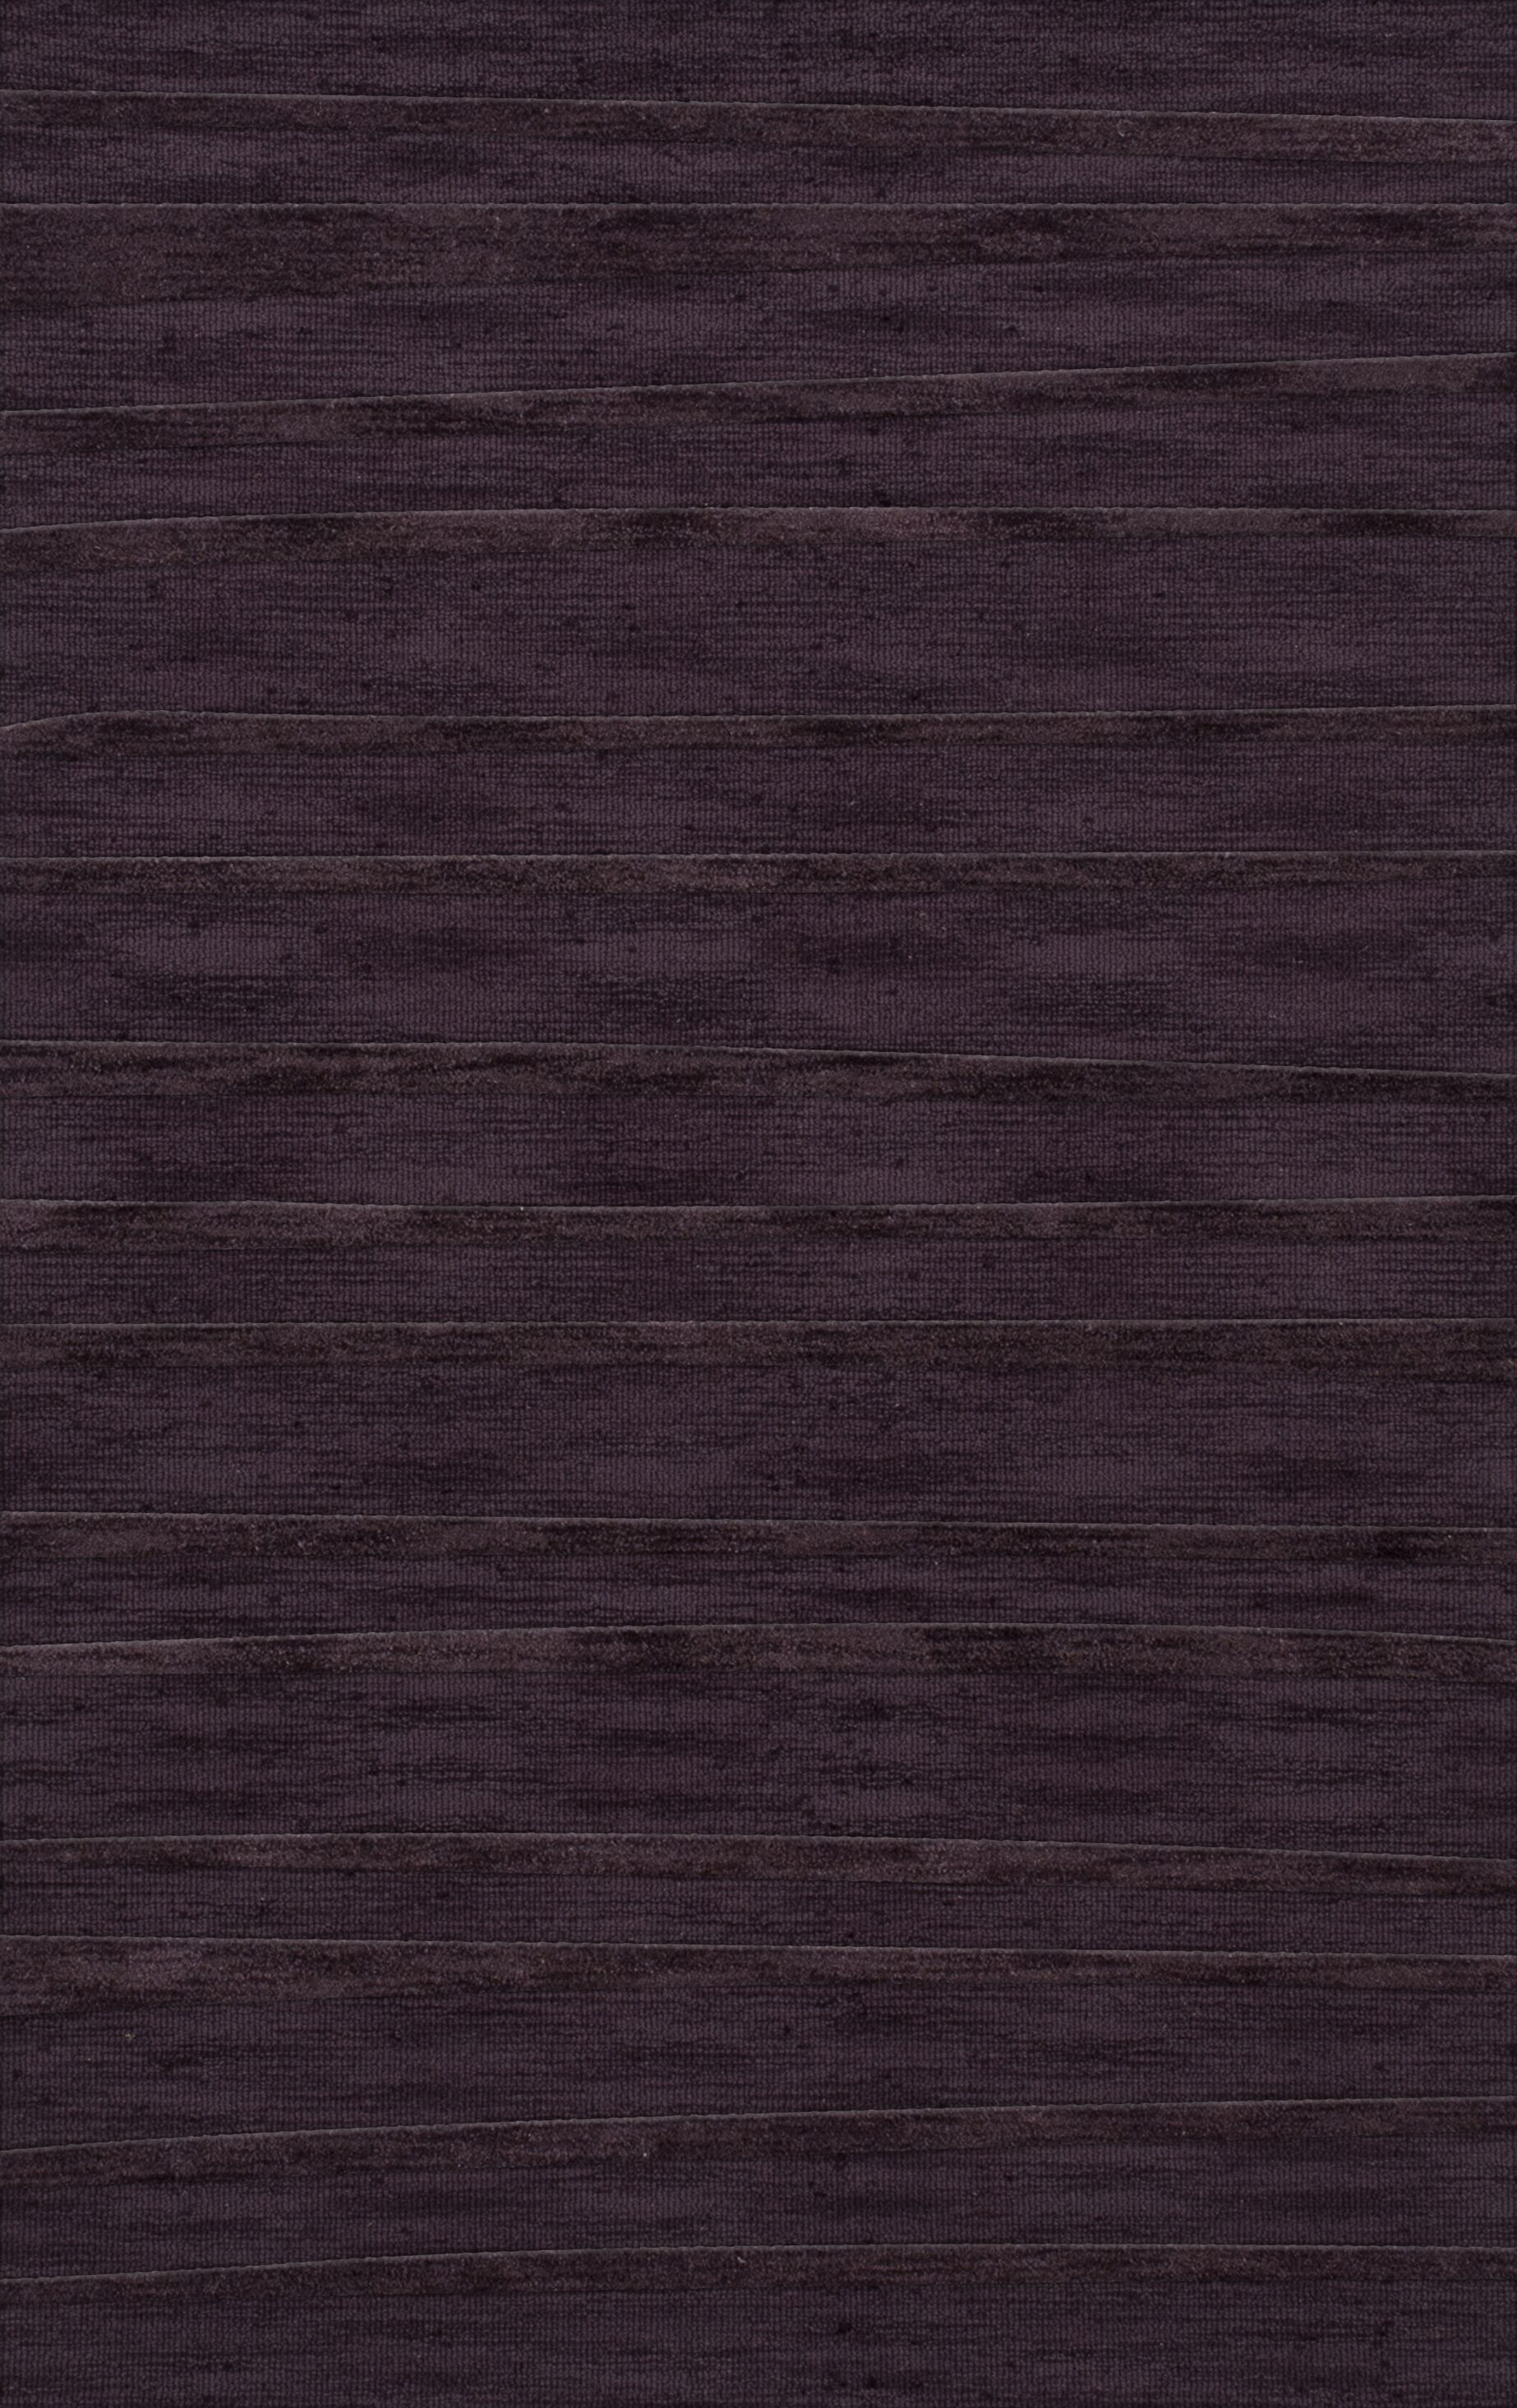 Dover Grape Ice Area Rug Rug Size: Rectangle 12' x 15'